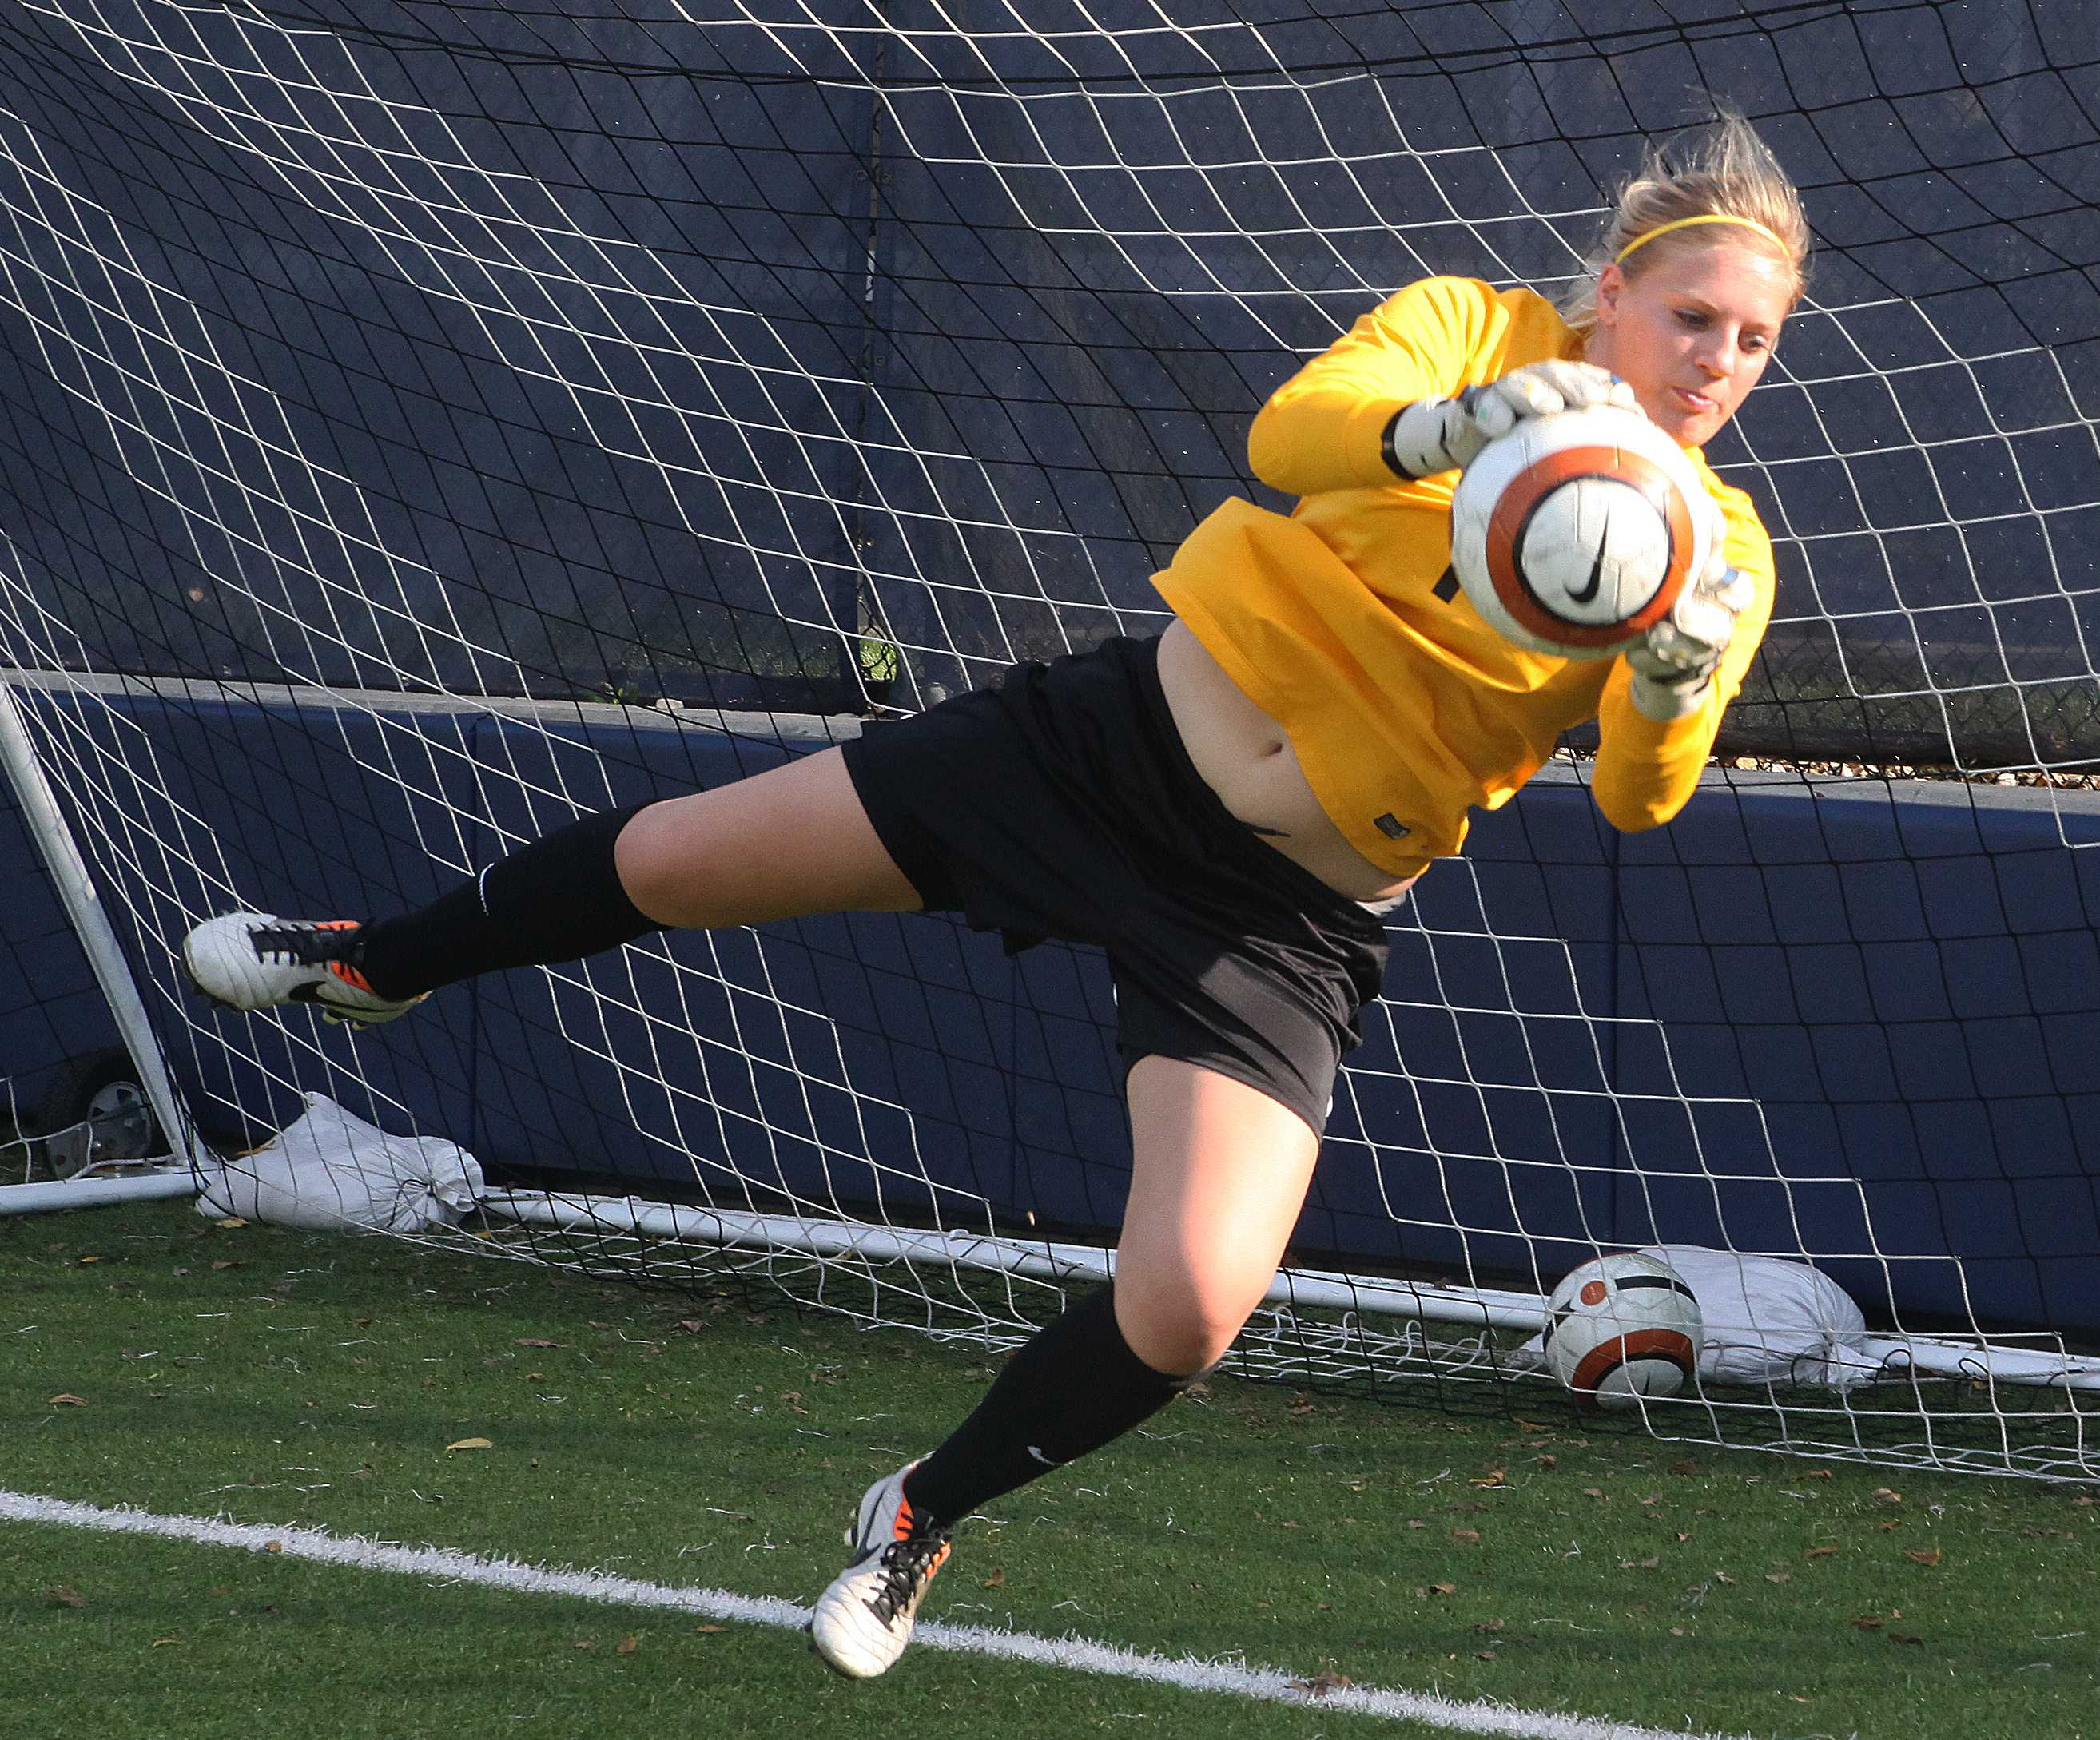 Senior Meredith Chew  snatches the ball during practice Sept. 28. The women's soccer team will be going up against CCIW rival Illinois Wesleyan on Oct. 3 at Illinois Wesleyan.